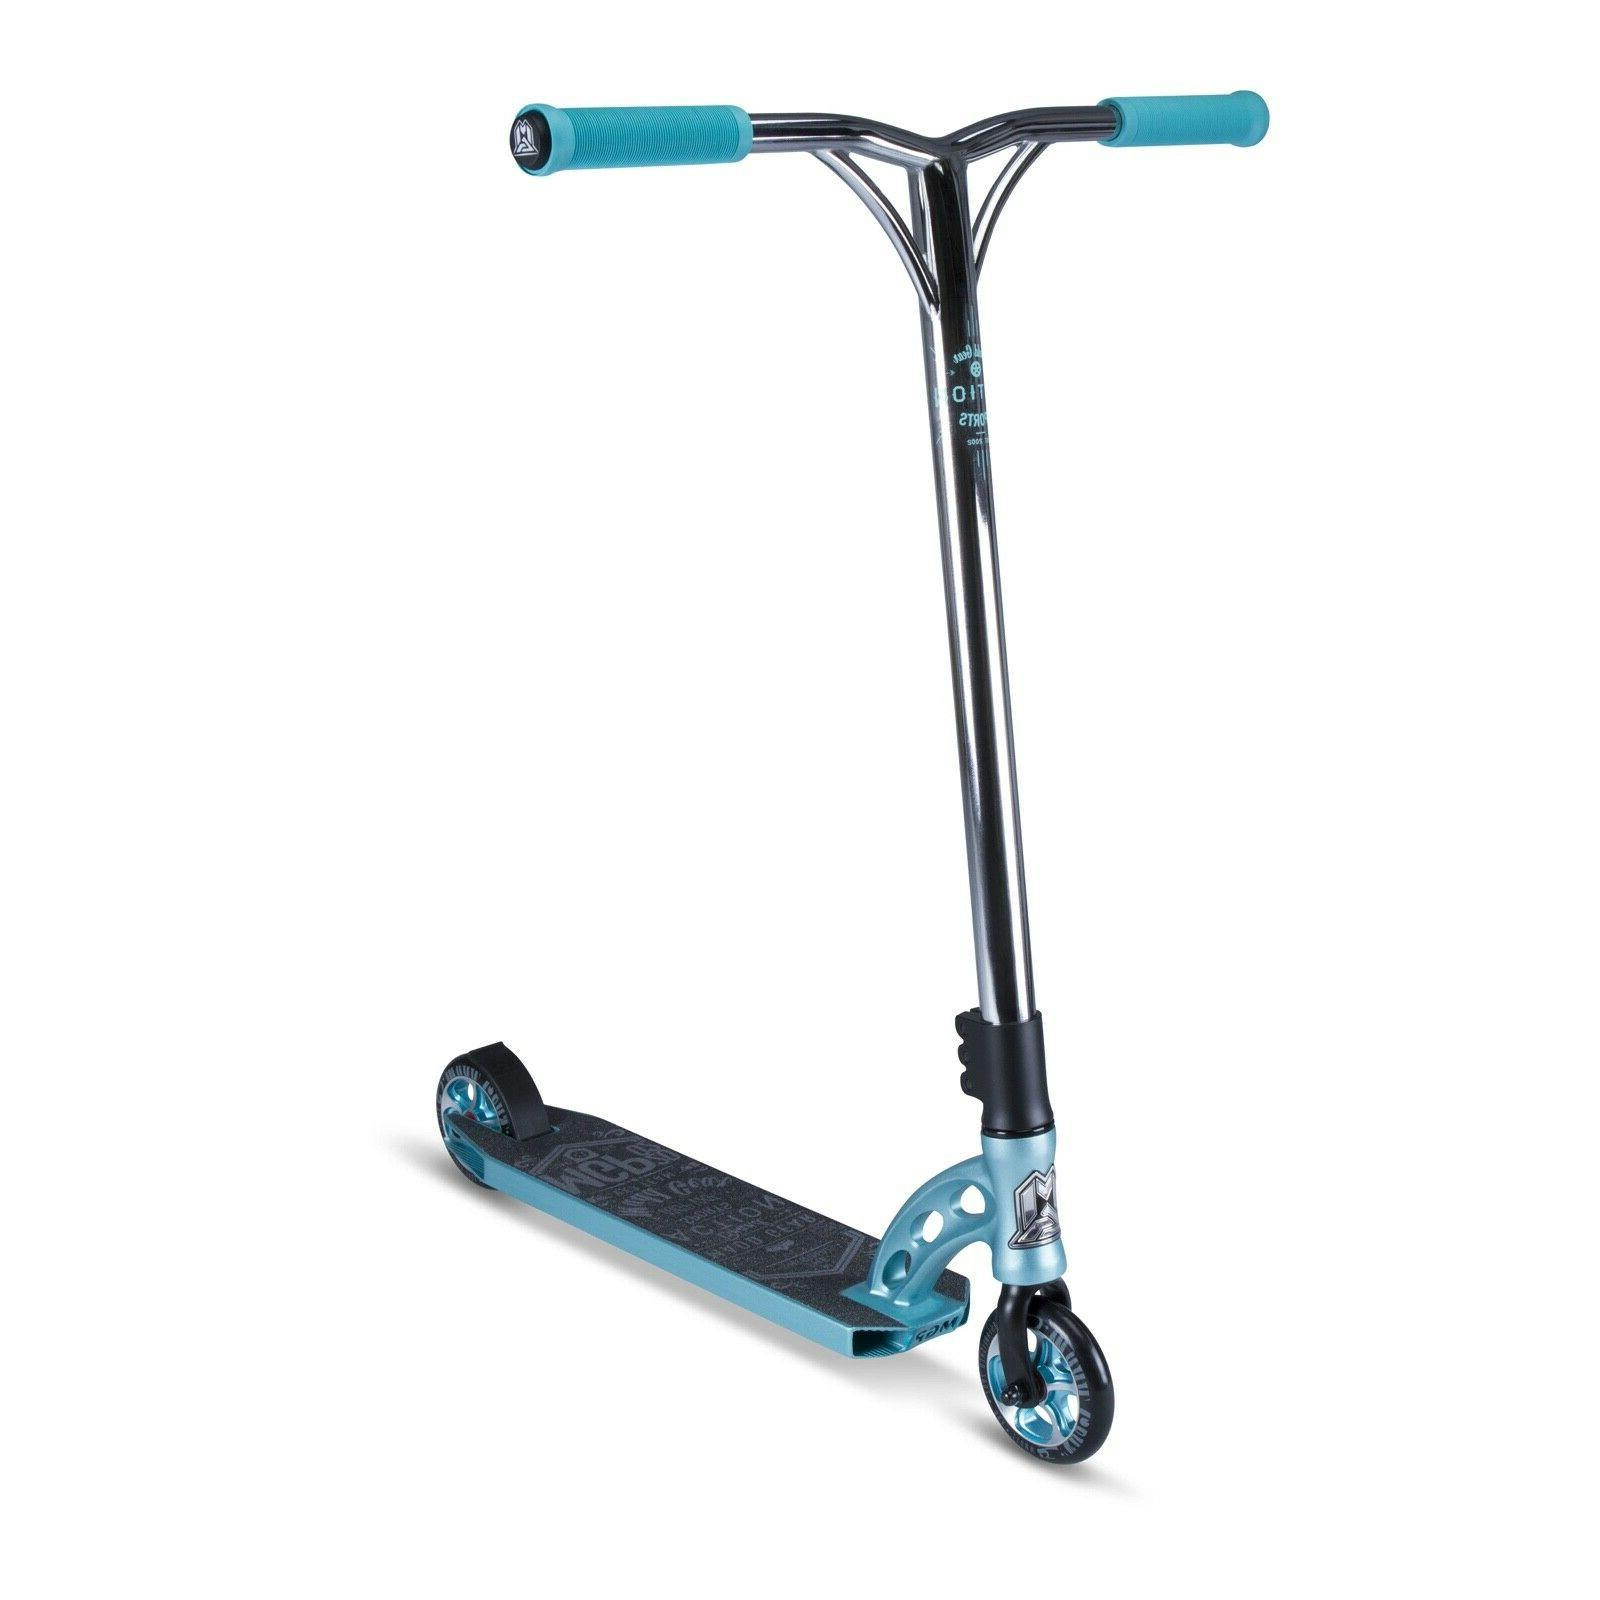 gear vx7 team scooter teal forged alloy